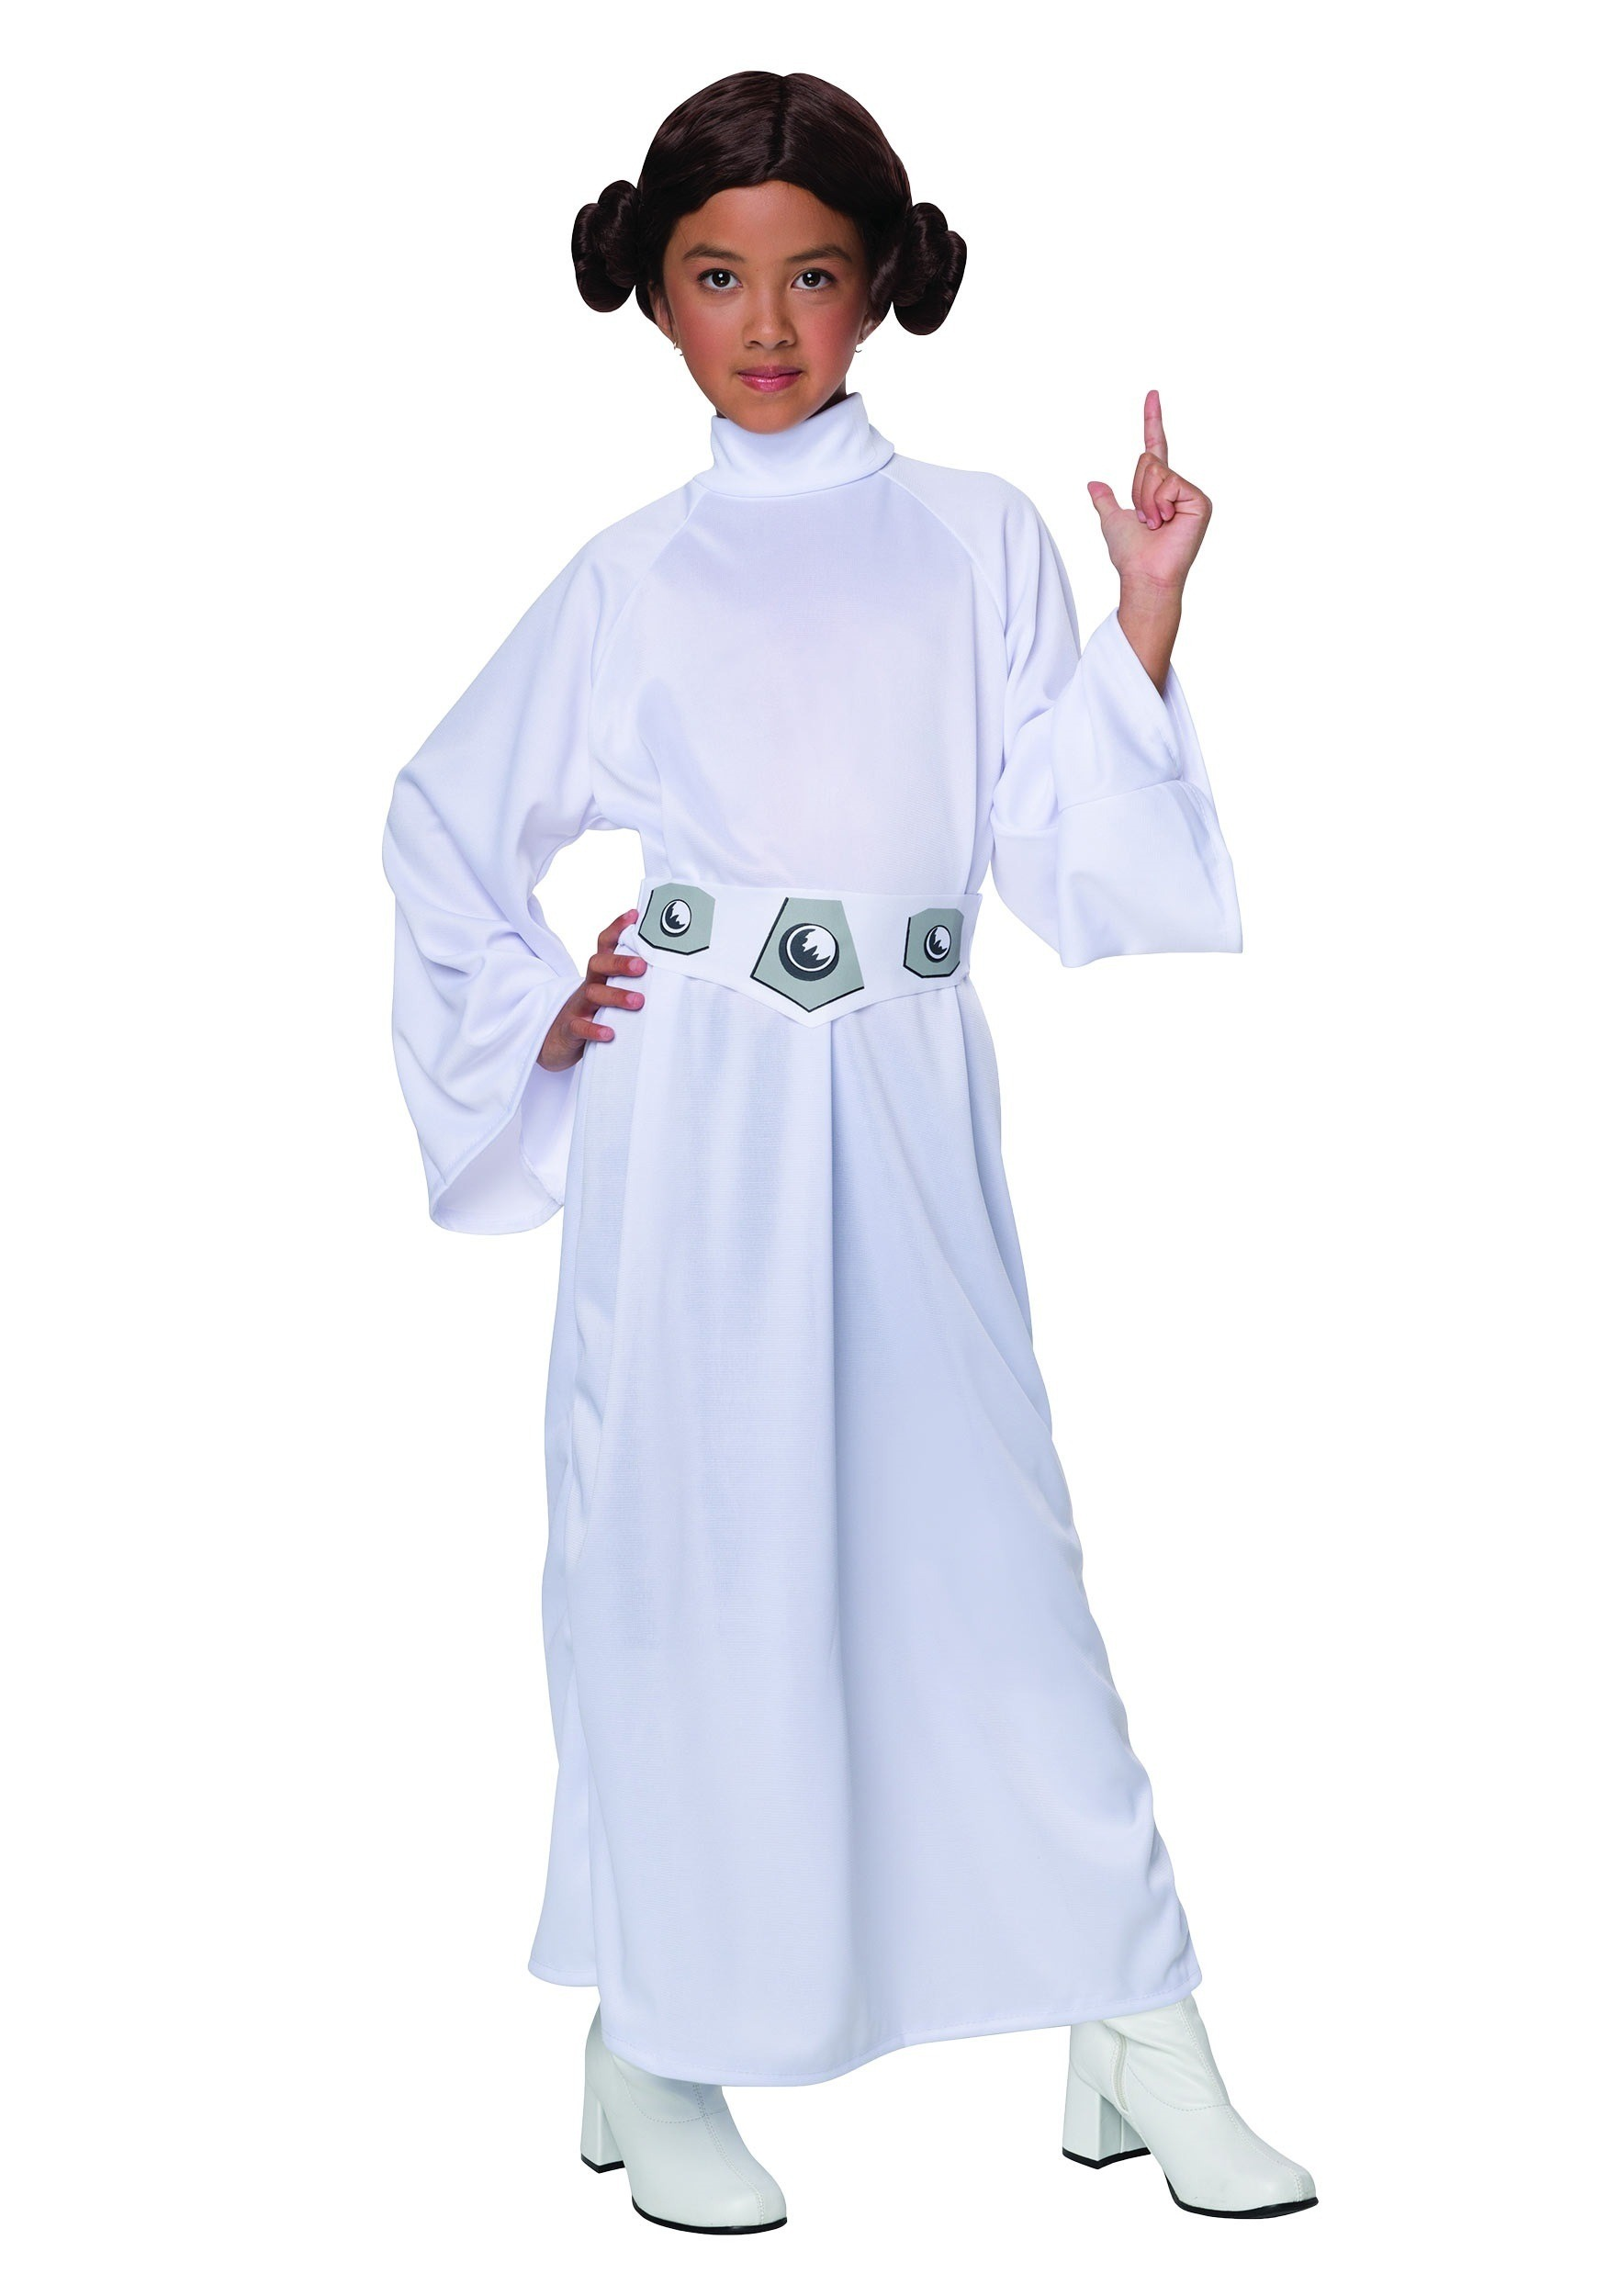 Child Princess Leia Costume  sc 1 st  Buy Star Wars Costumes & Child Princess Leia Costume - Girls Star Wars Costumes